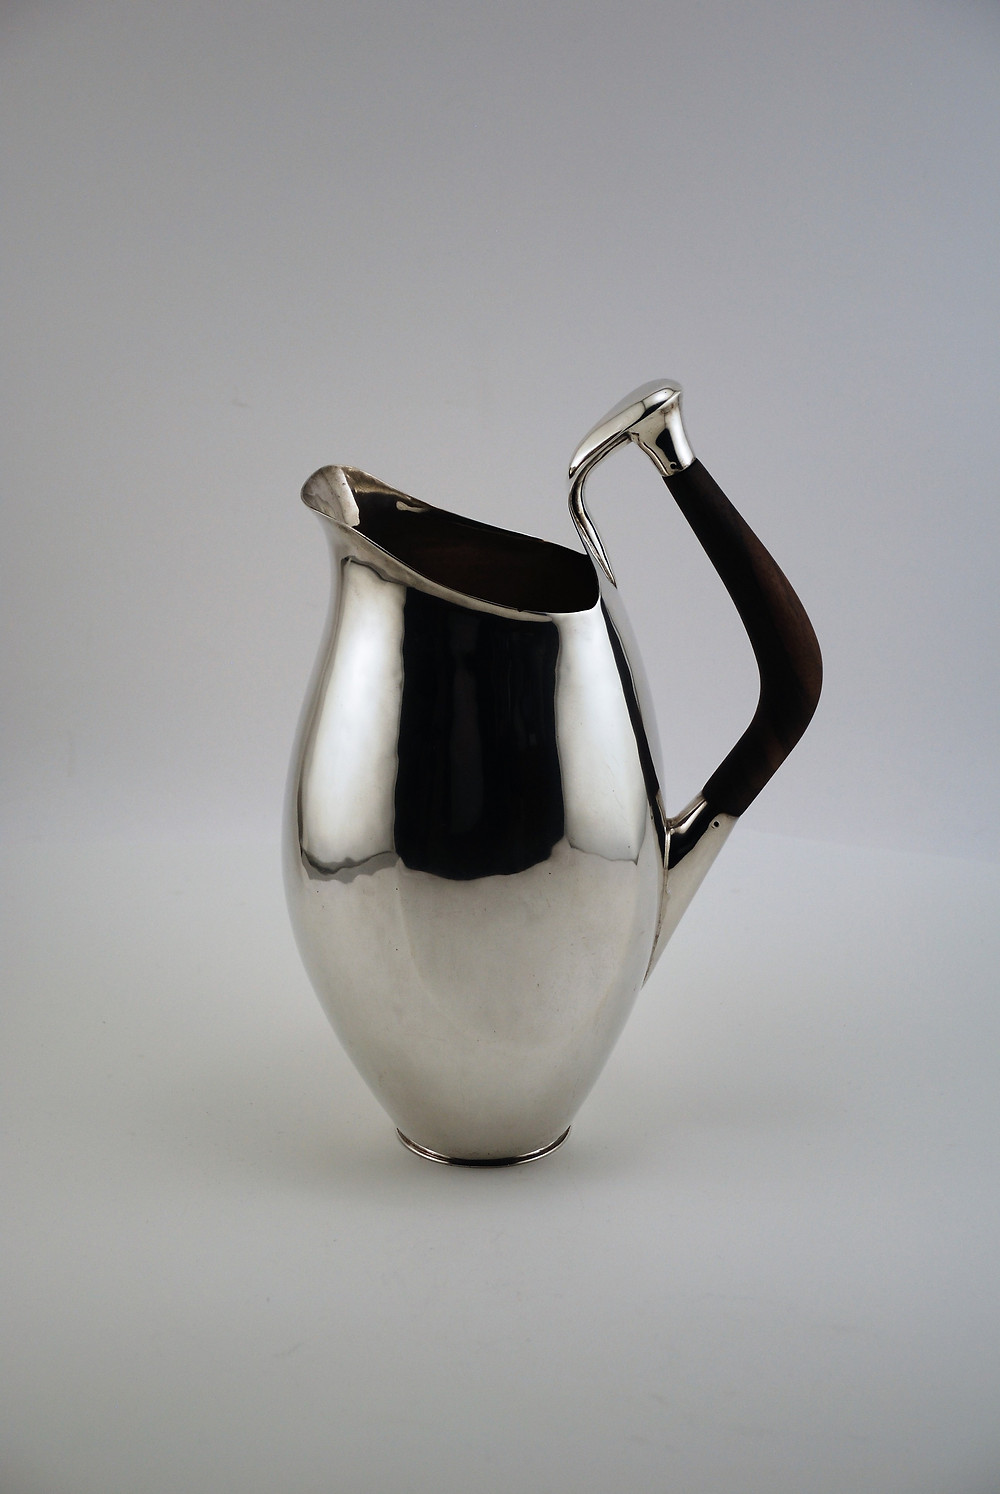 Mary Lee Hu, Pitcher, 1965. Sterling silver, wood. Gift of the Artist. This piece was created during her first year at Cranbrook Academy of Art.